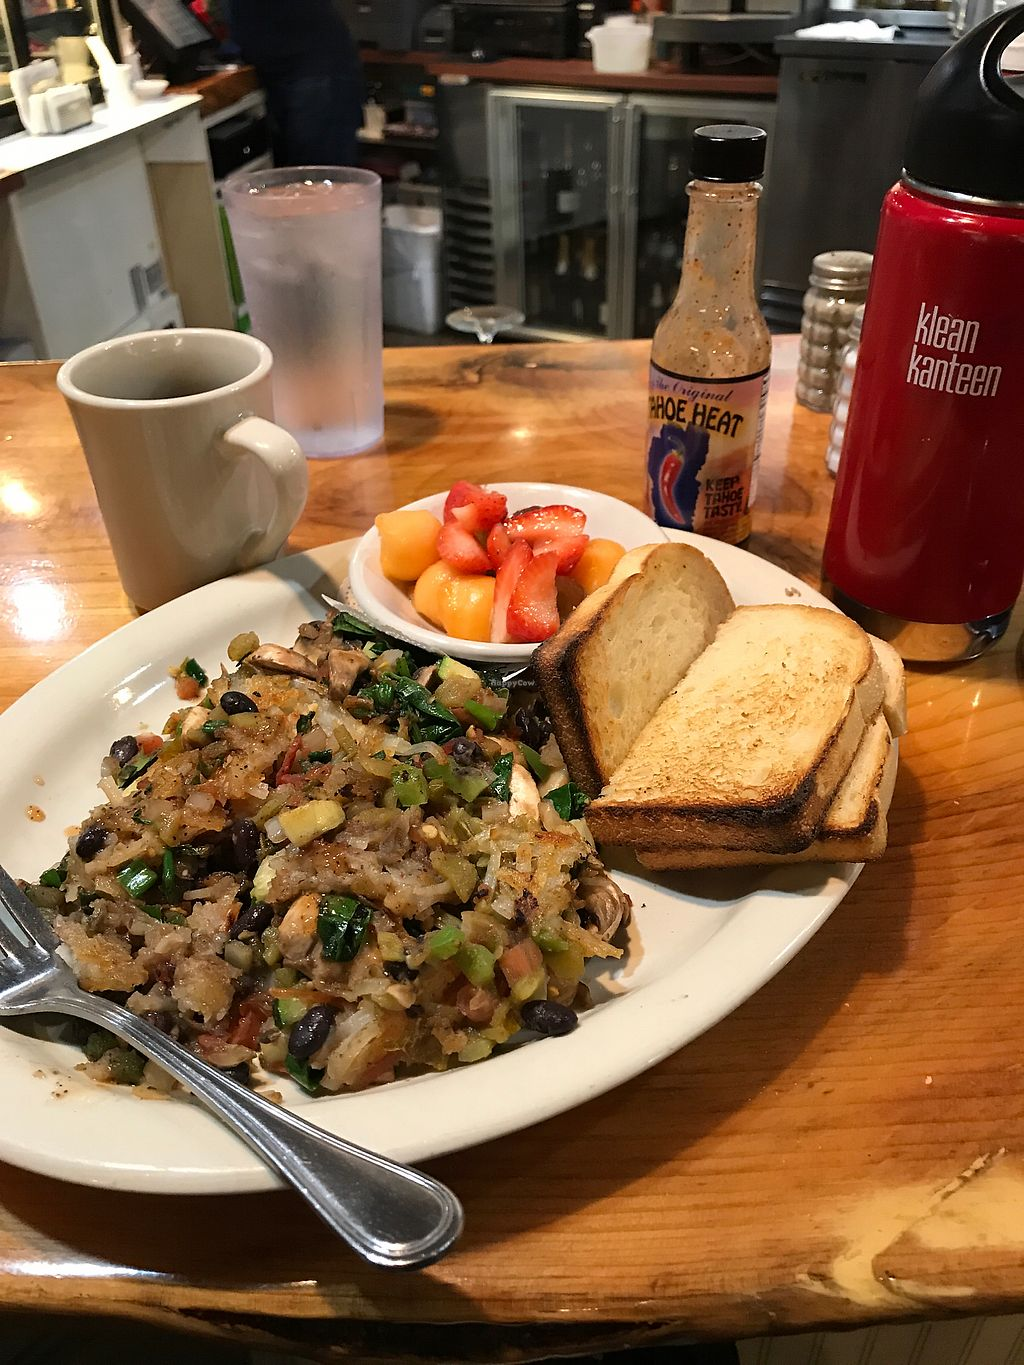 """Photo of Driftwood Cafe  by <a href=""""/members/profile/SerranoLover"""">SerranoLover</a> <br/>breakfast at the counter <br/> January 6, 2018  - <a href='/contact/abuse/image/36222/343455'>Report</a>"""